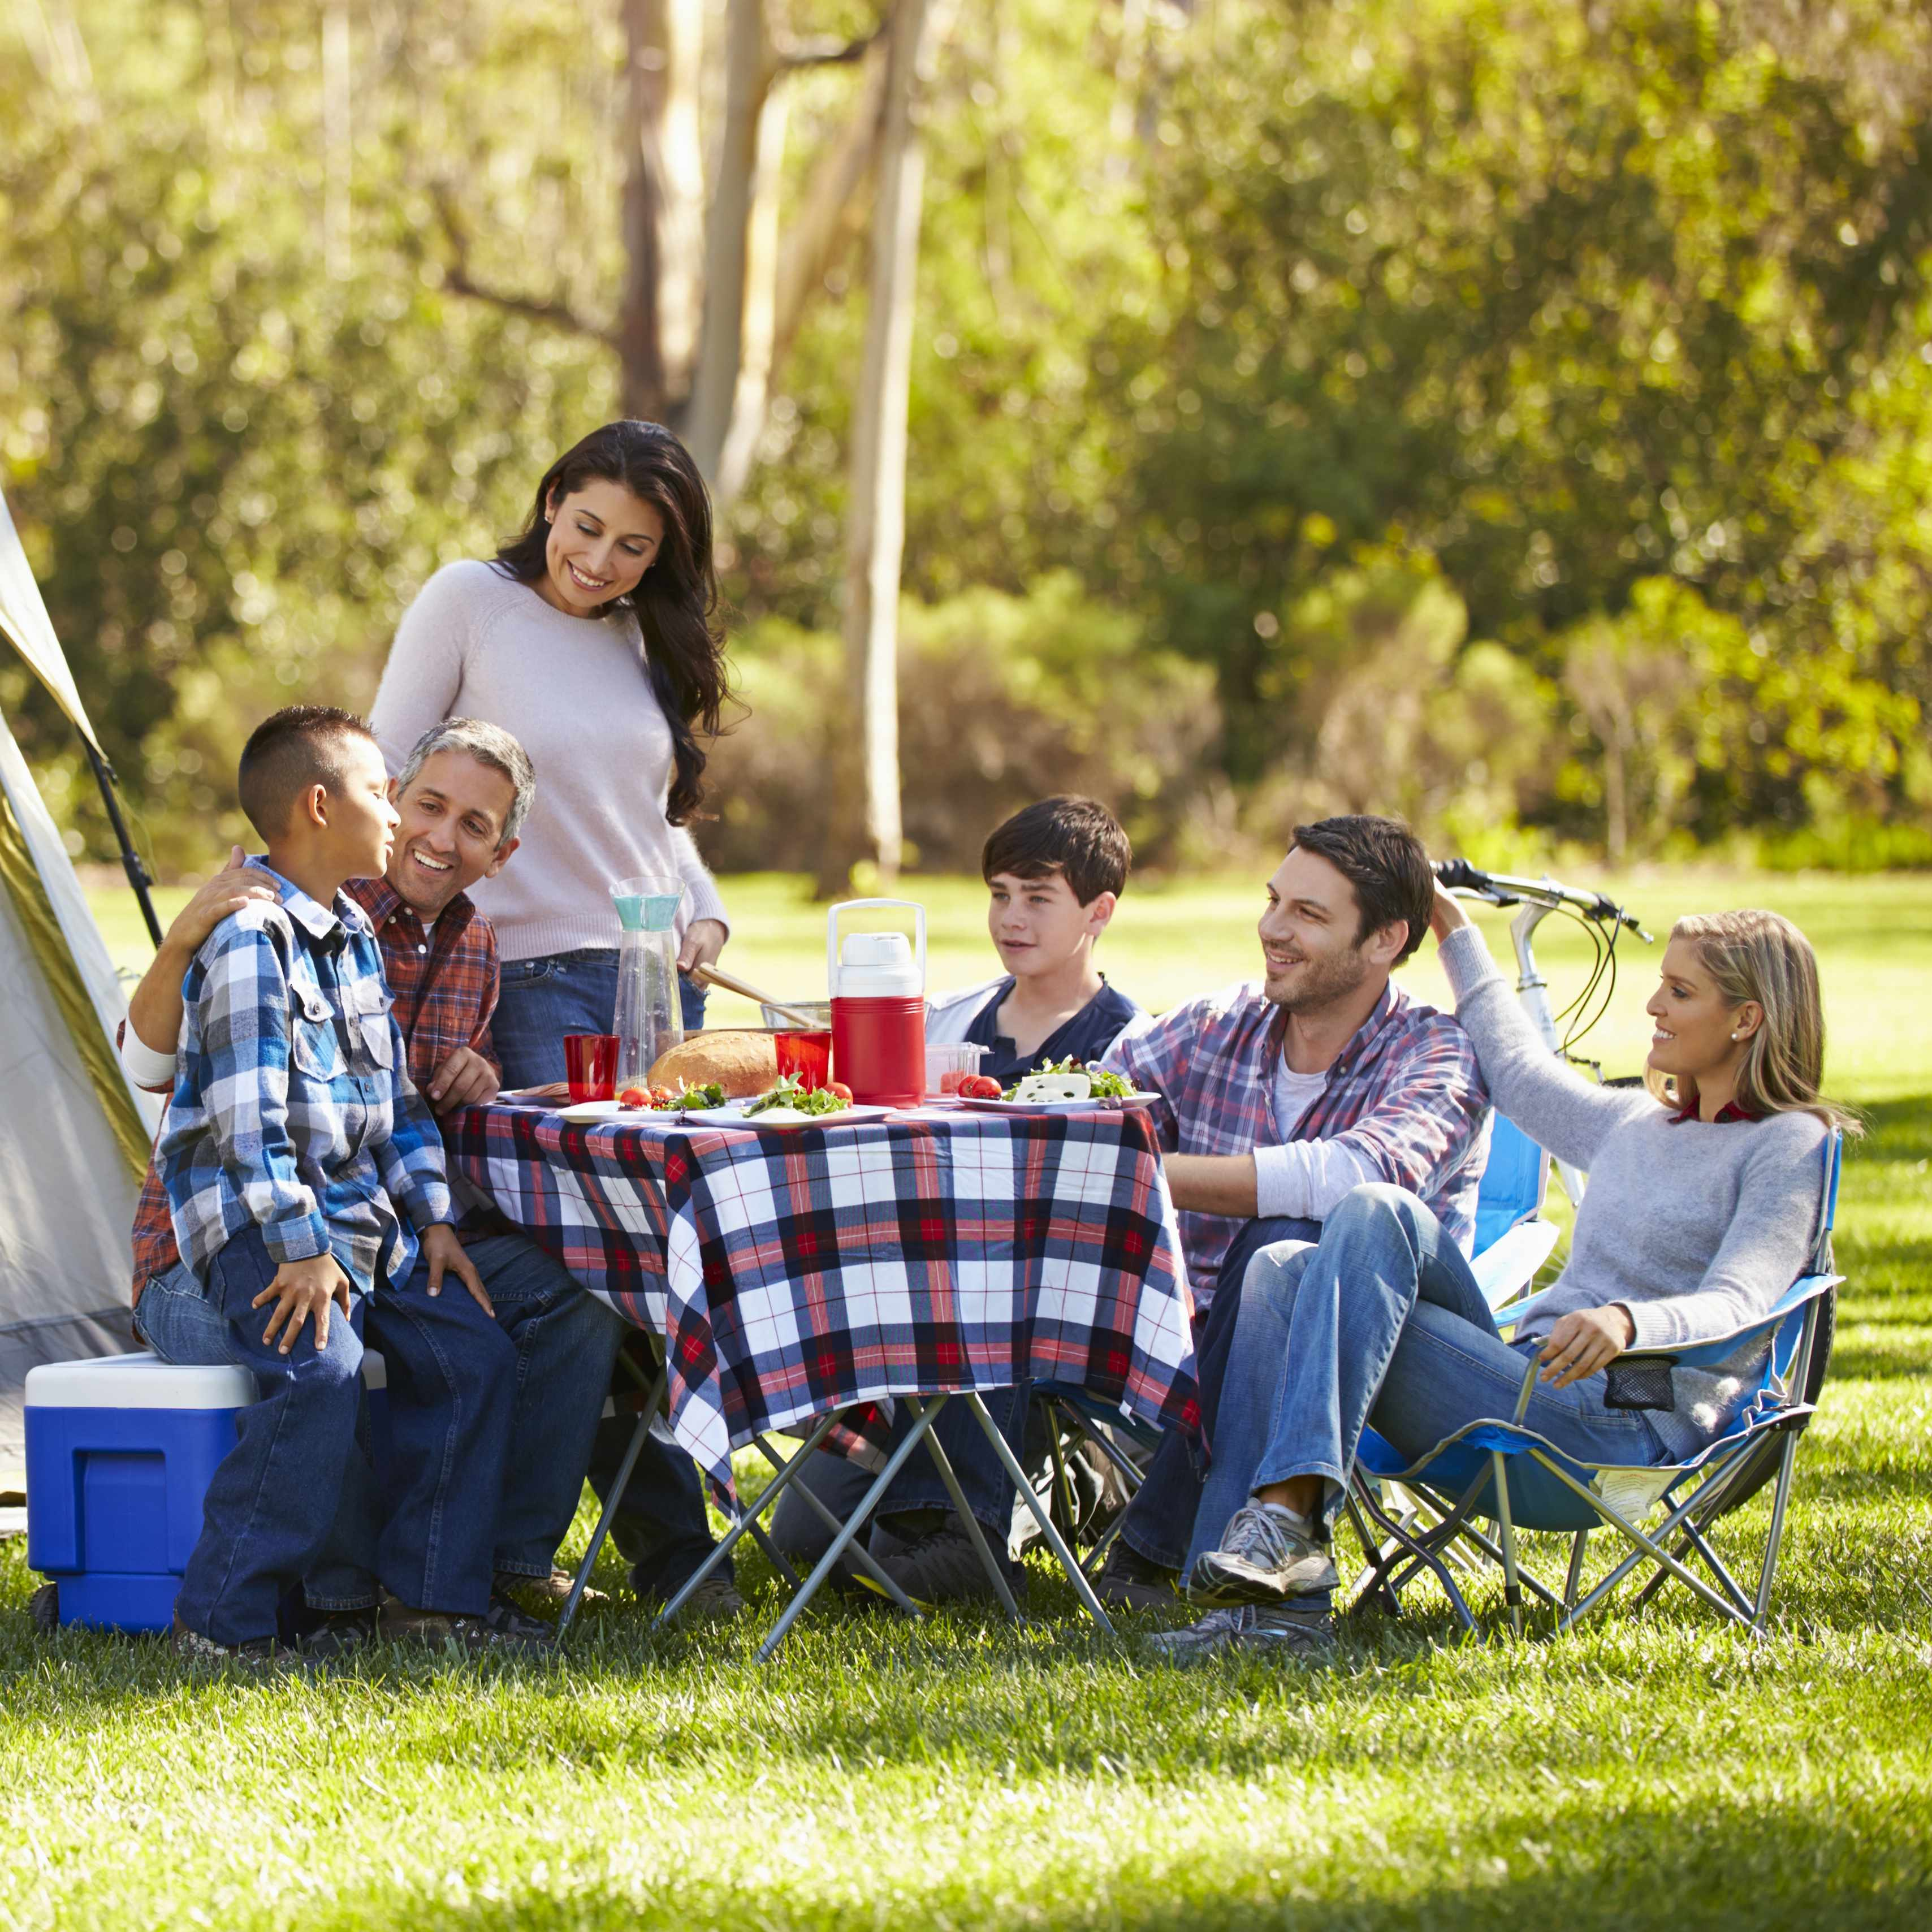 family and friends camping outdoors in a wooded area or park